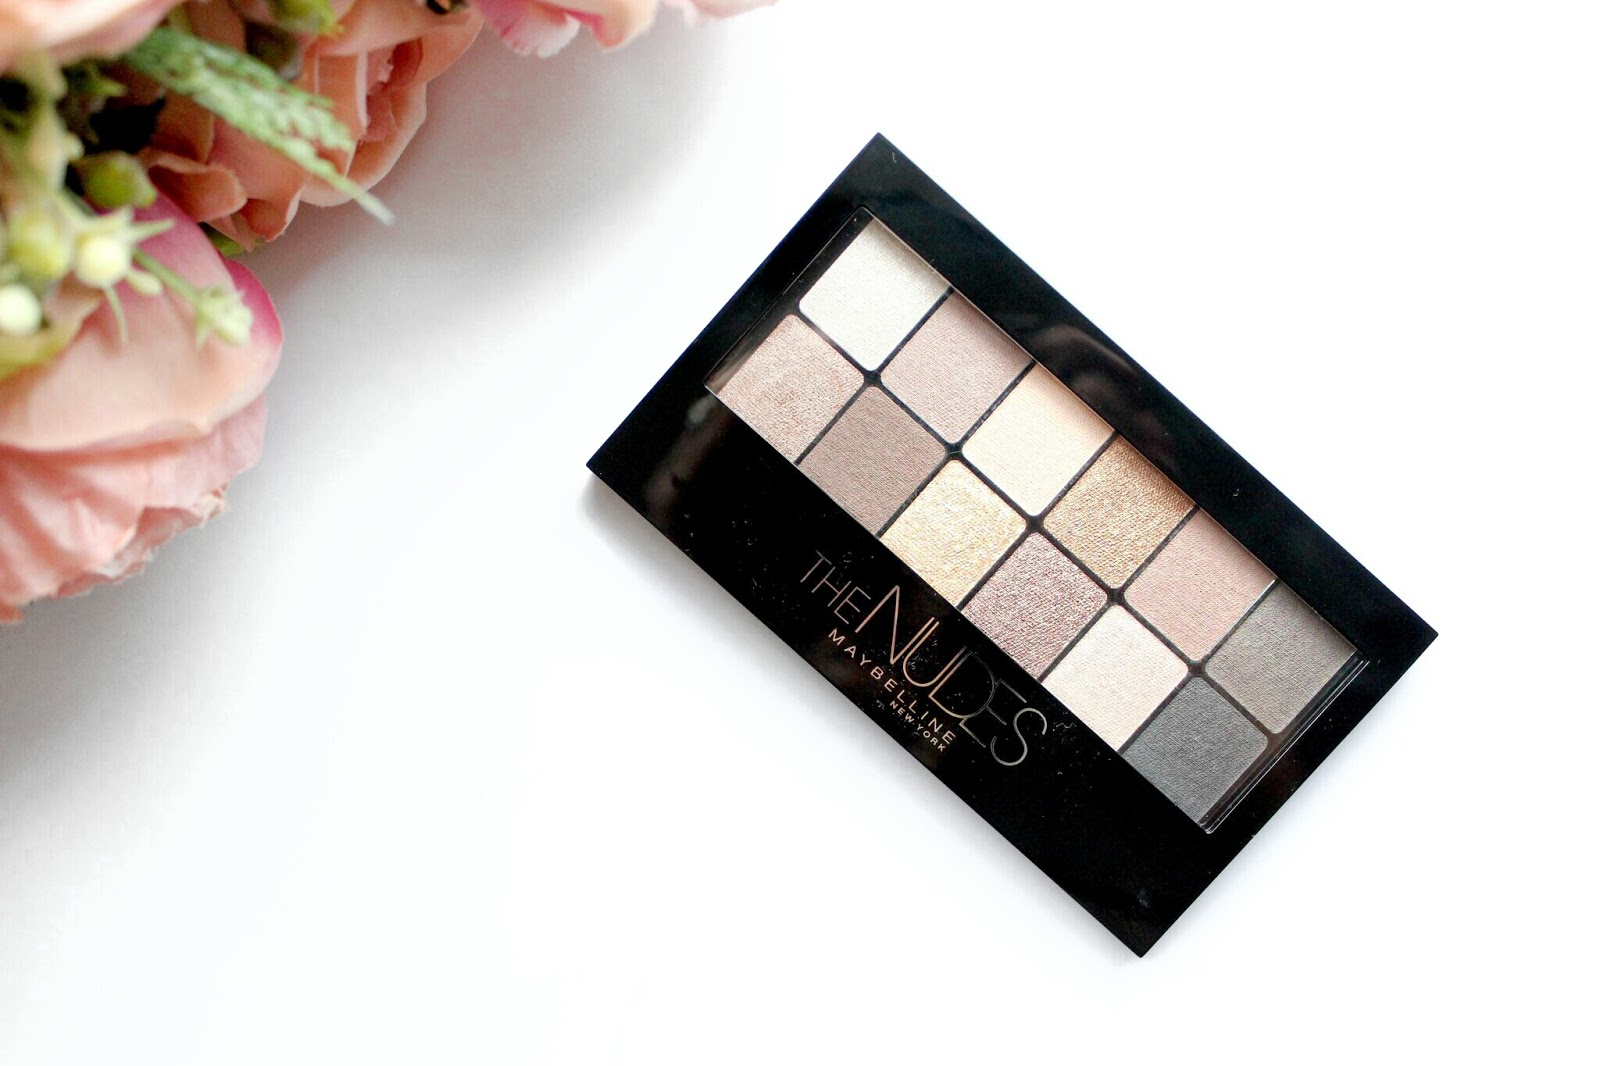 A picture of the Maybelline The Nudes Eyeshadow Palette